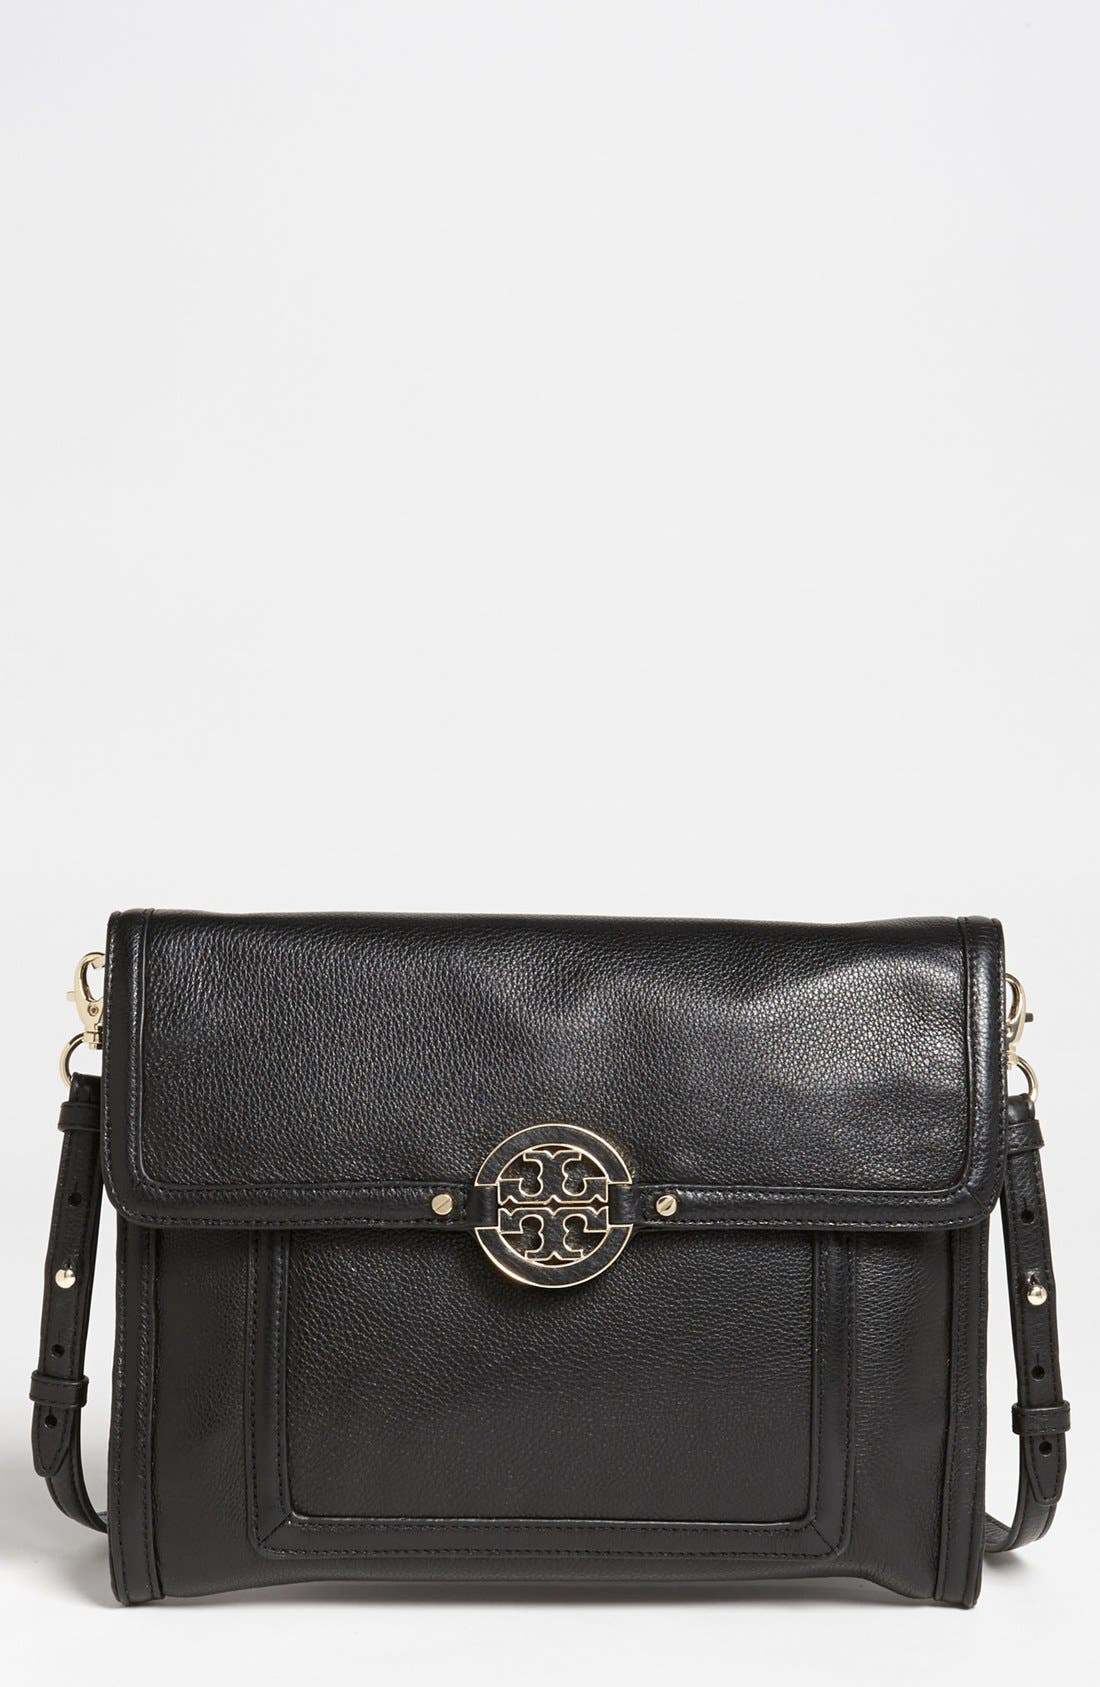 Main Image - Tory Burch 'Amanda' Crossbody Bag